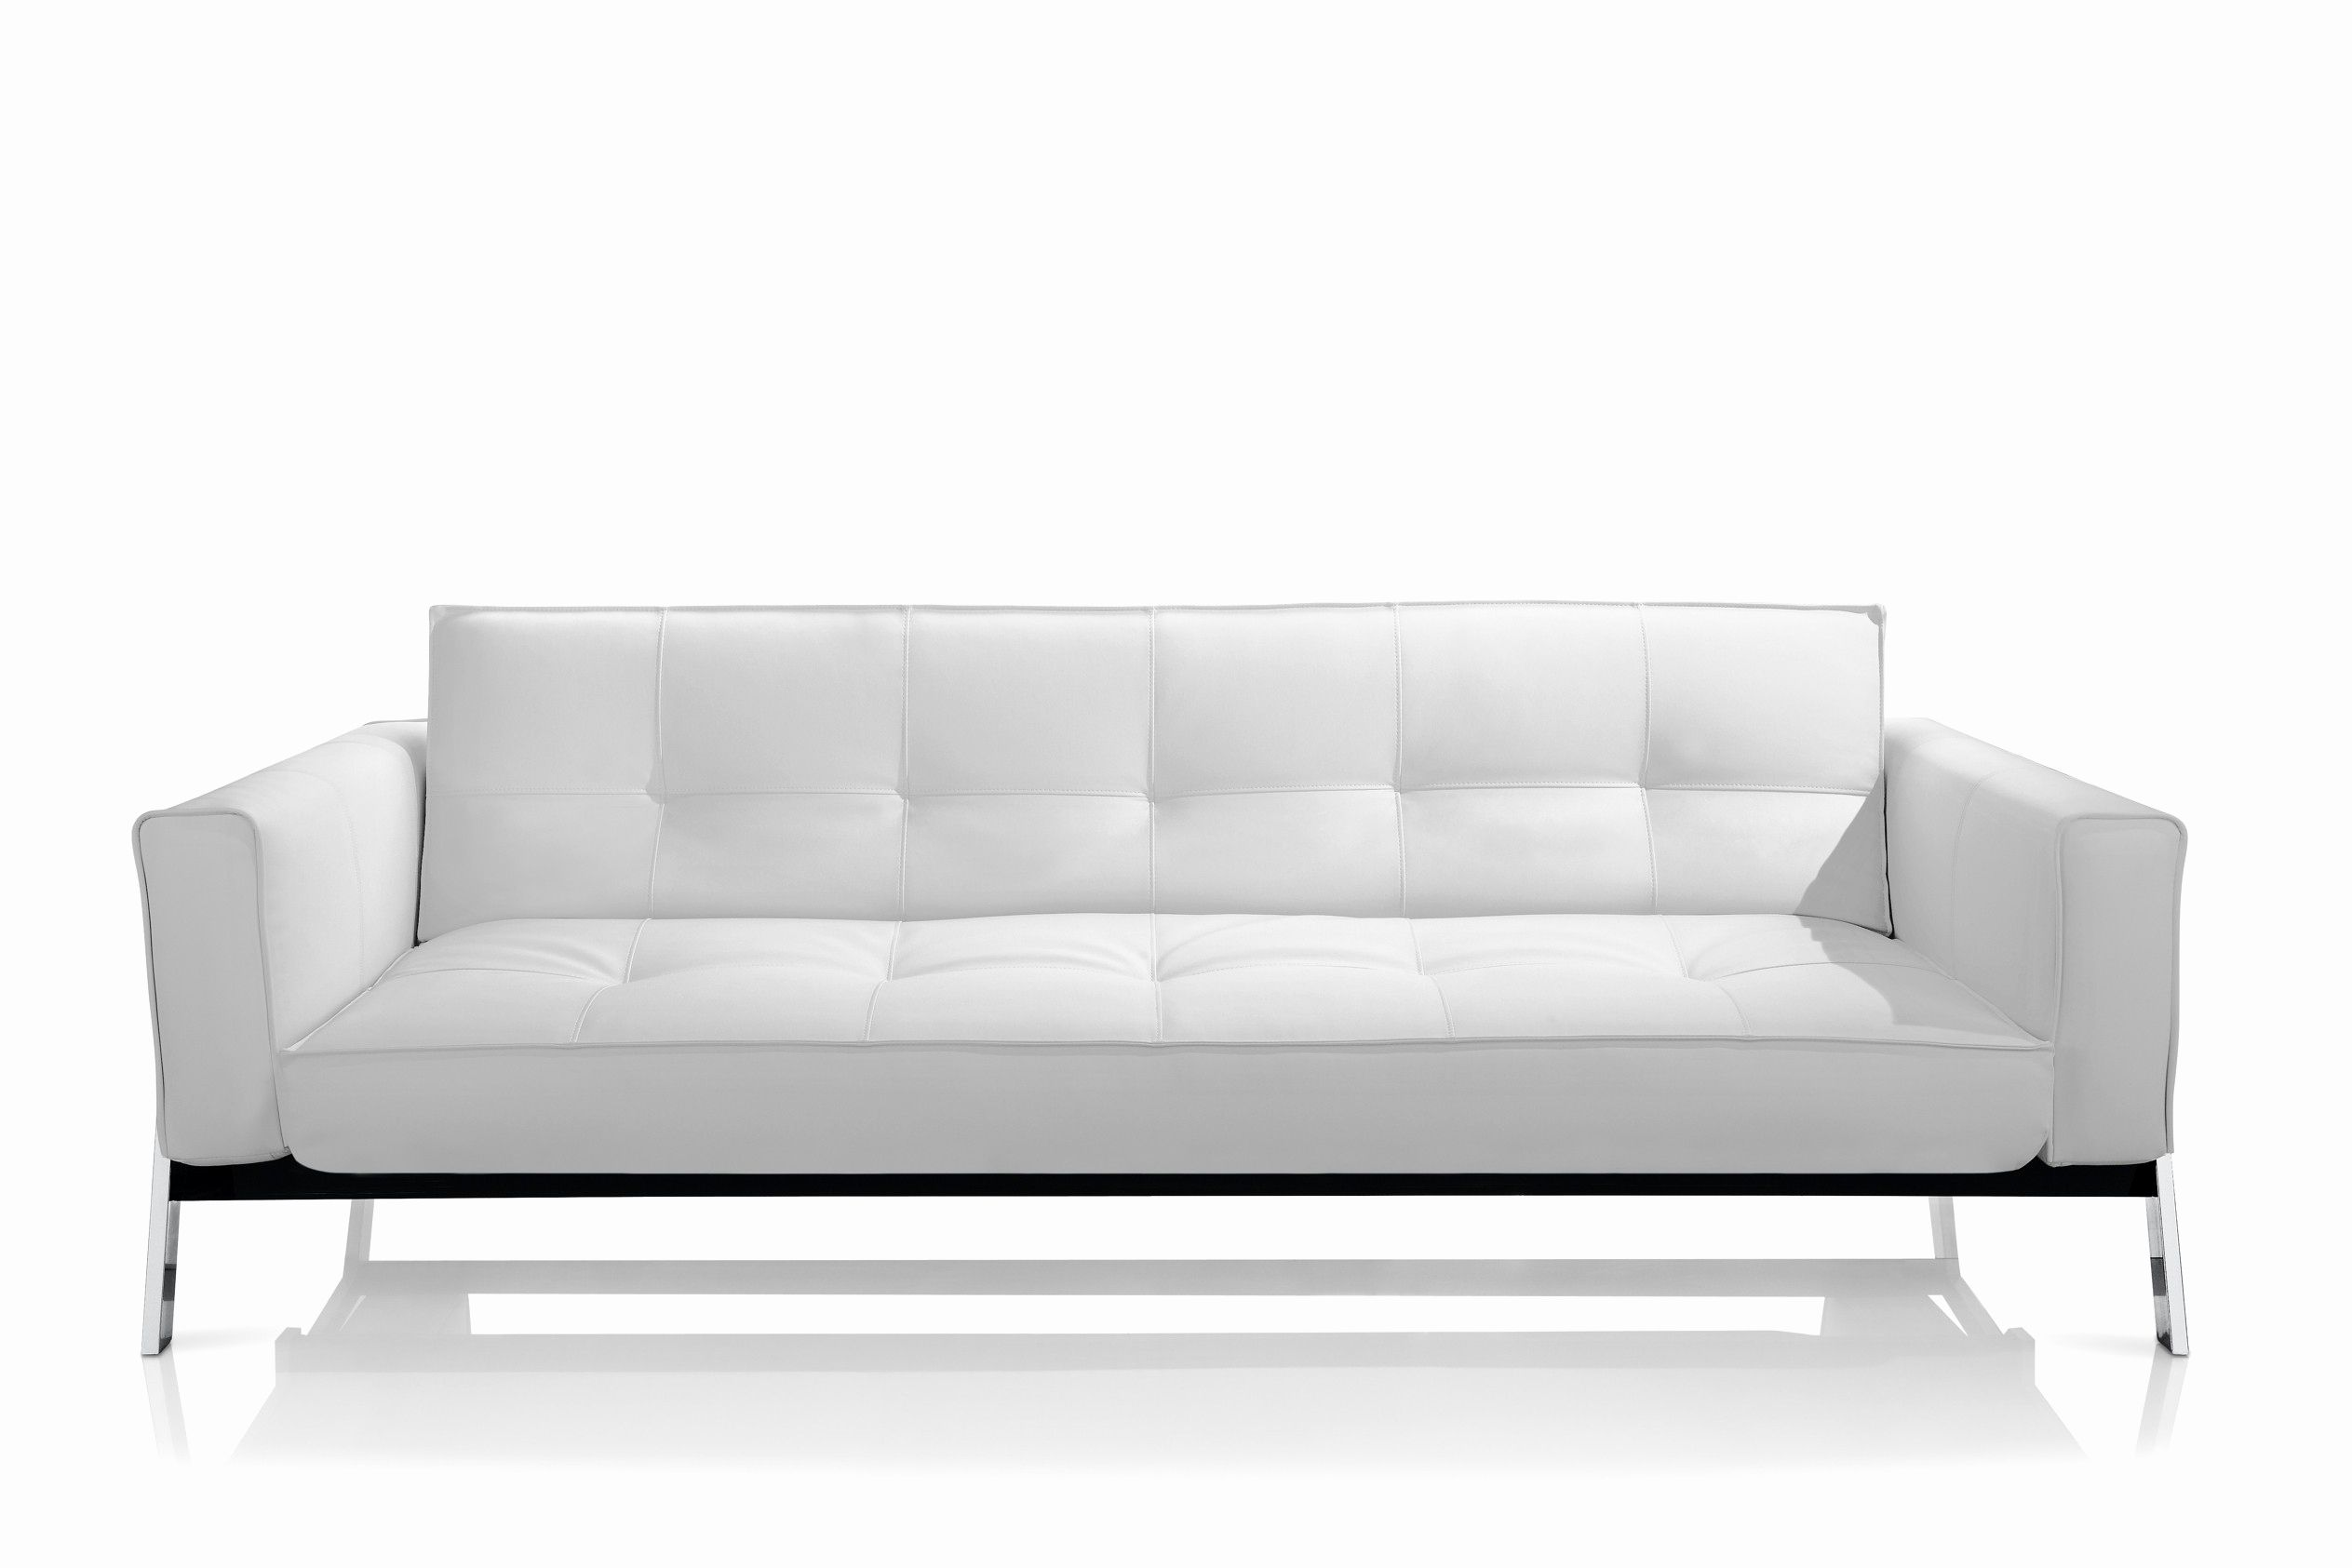 Inspirational White Leather Sofa Images Interior Suede Leather